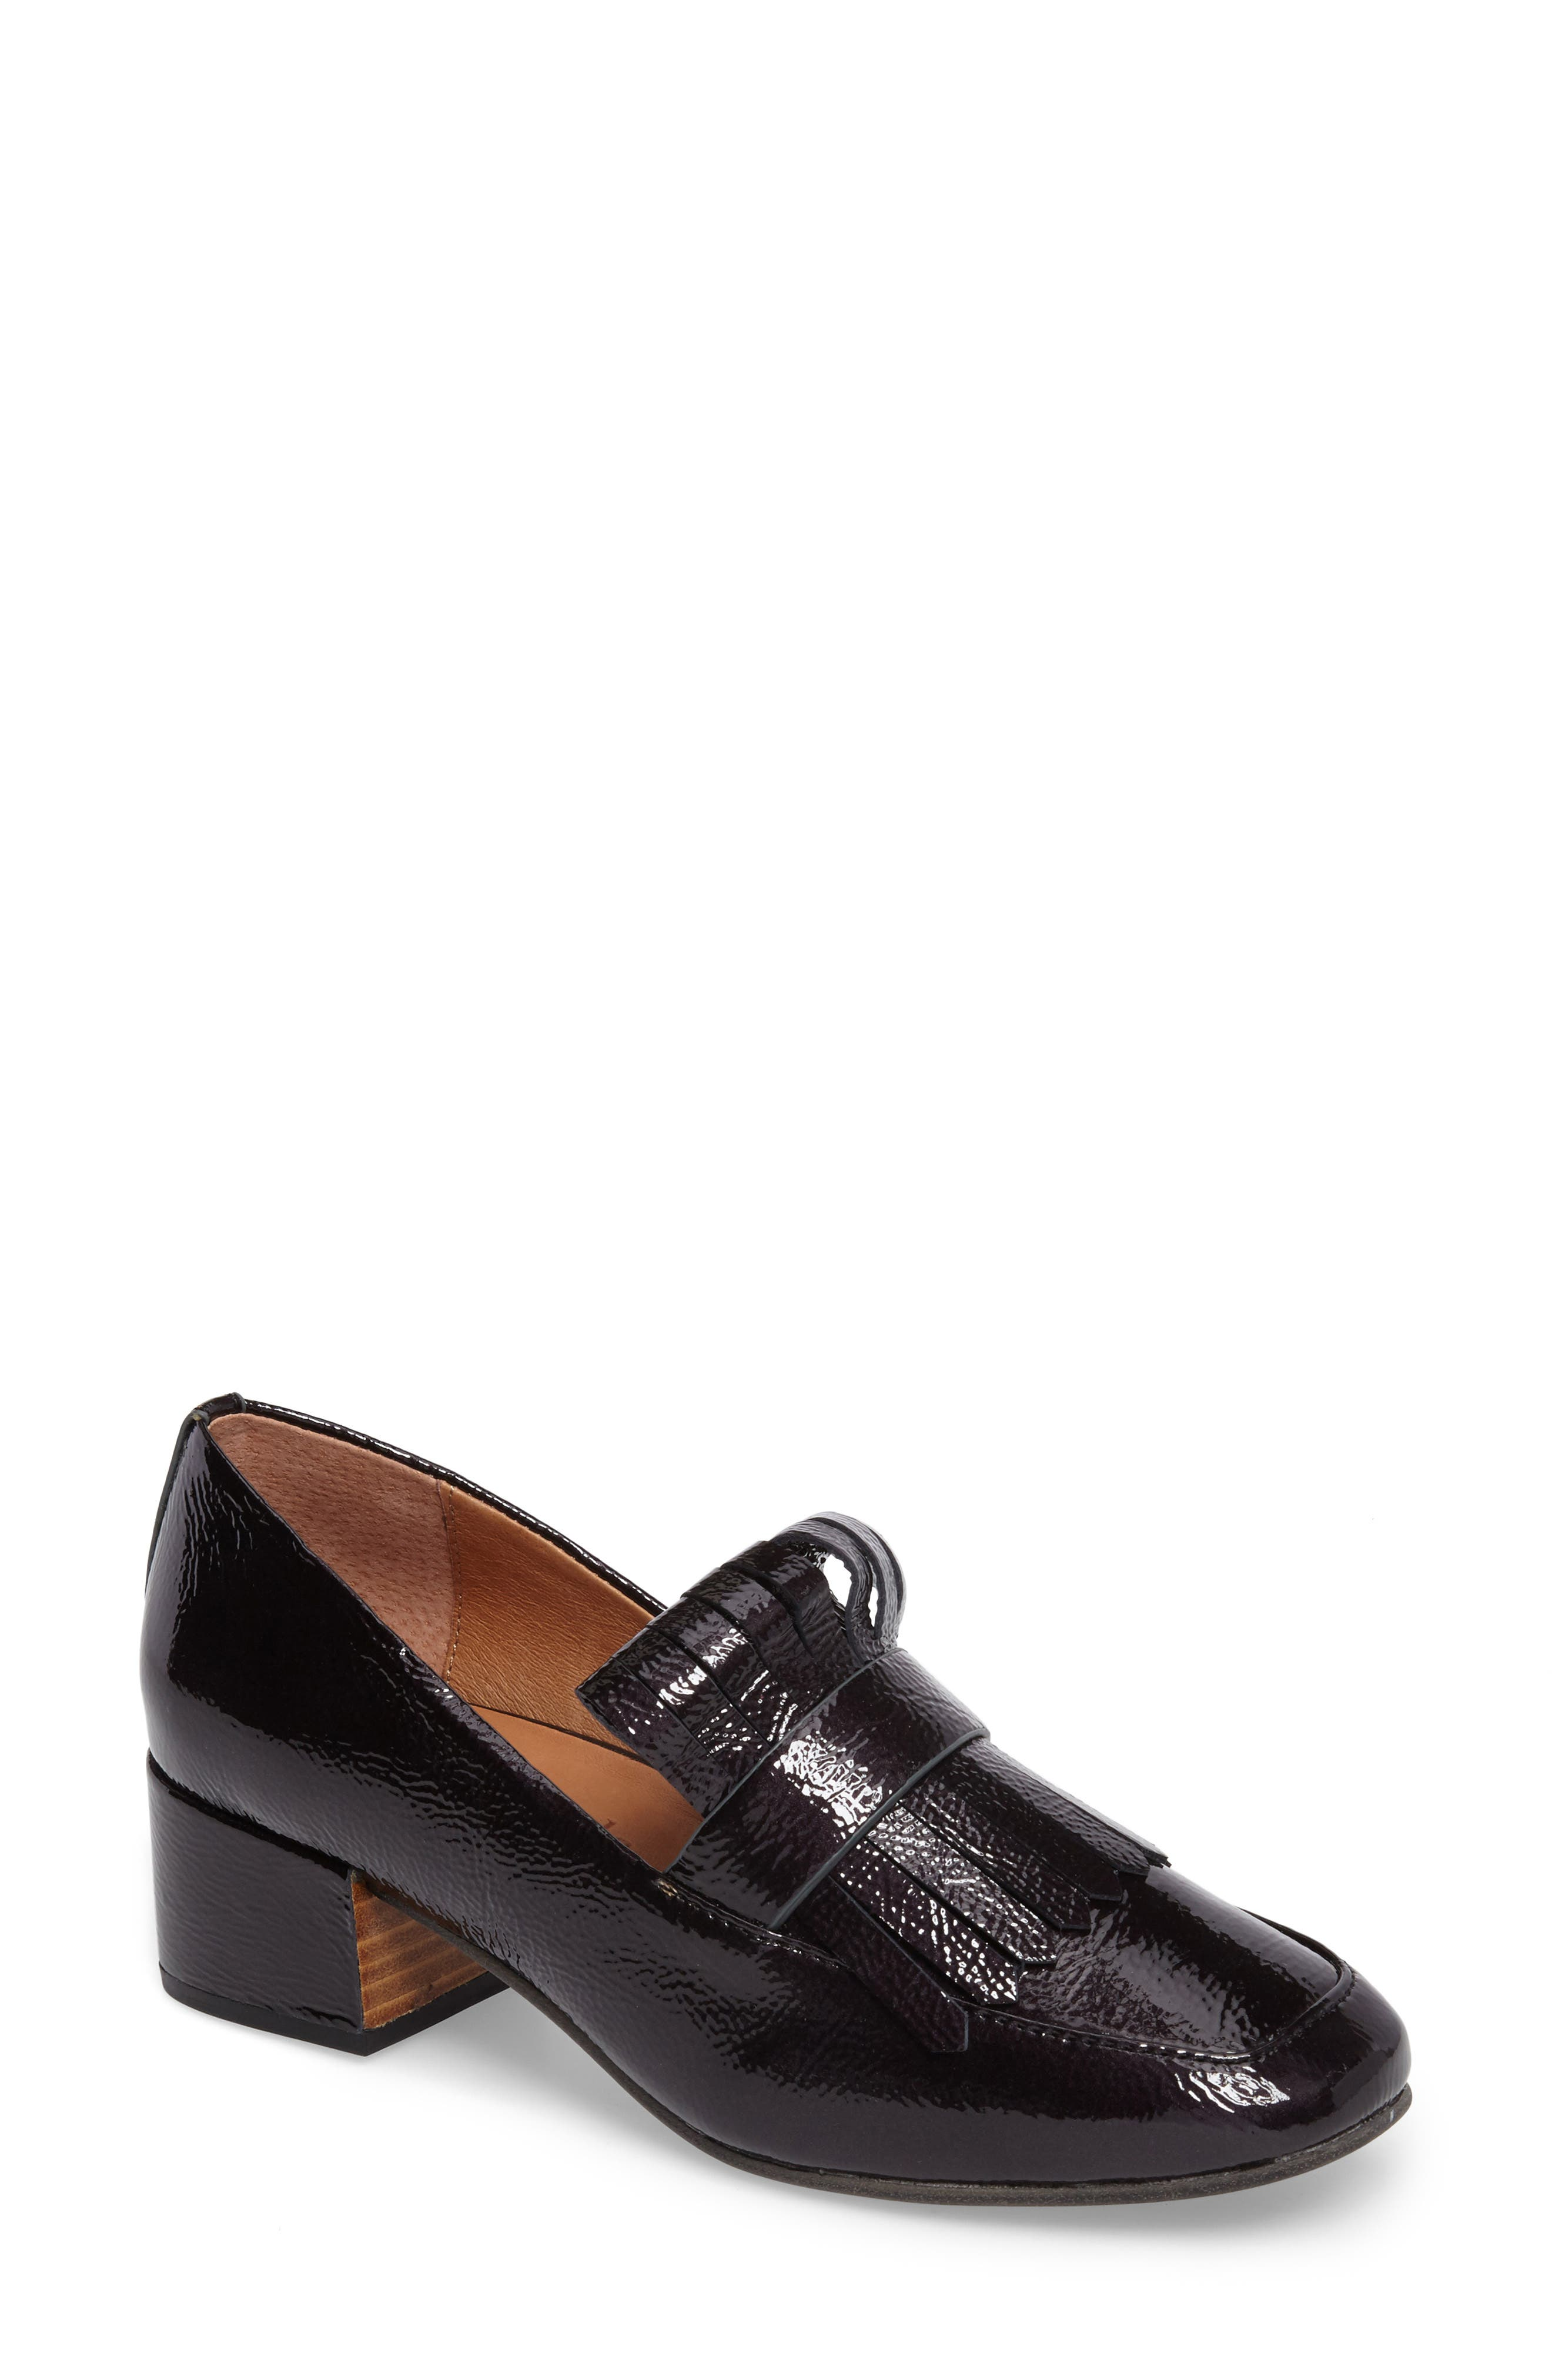 GENTLE SOULS BY KENNETH COLE Ethan Pump, Main, color, 001